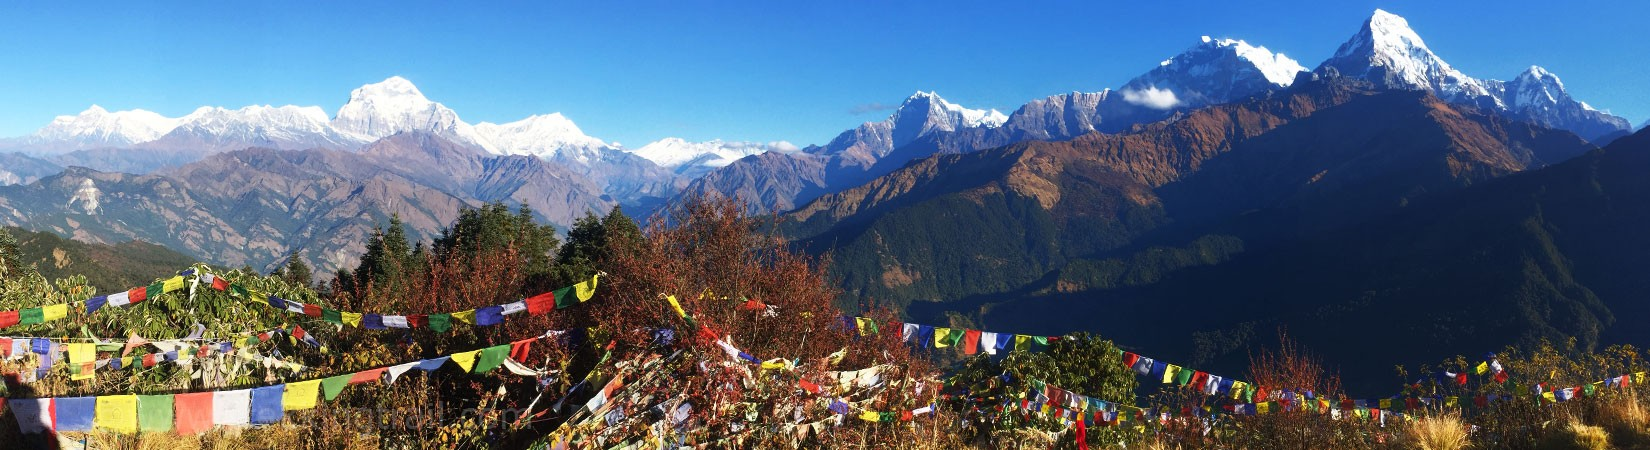 view from poon hill 3210m